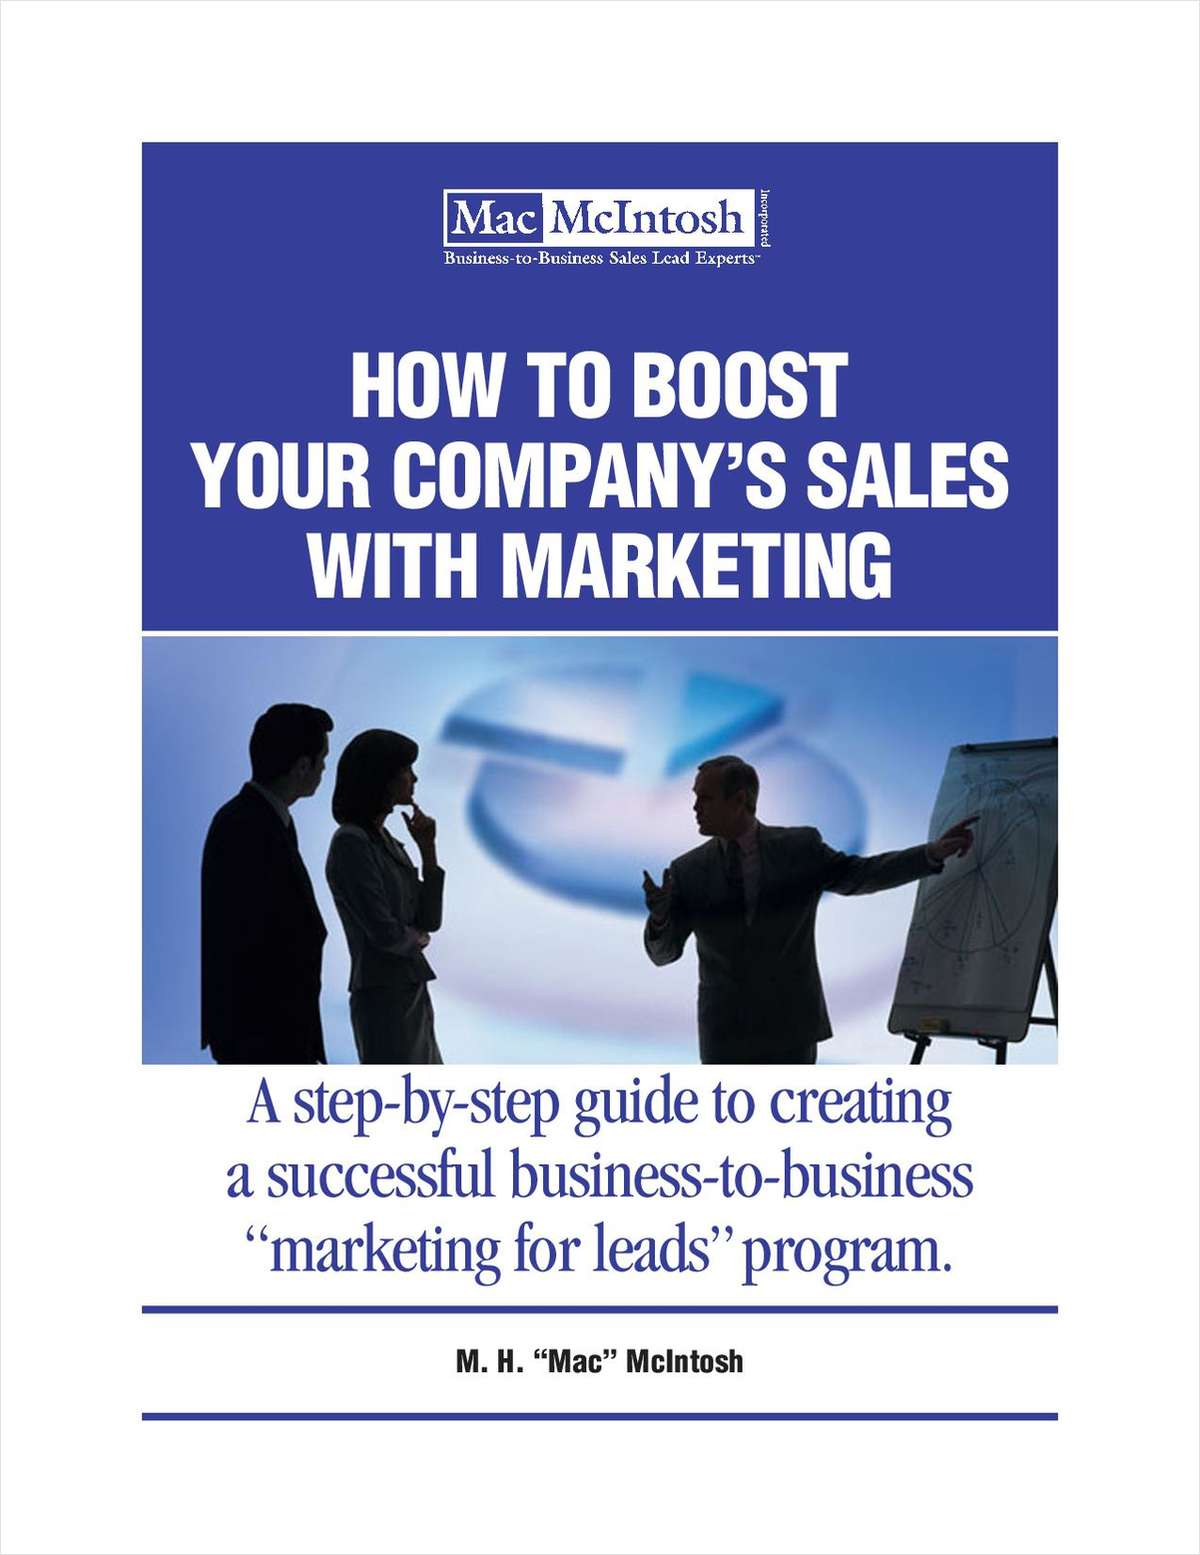 How to Boost Your Company's Sales with Marketing